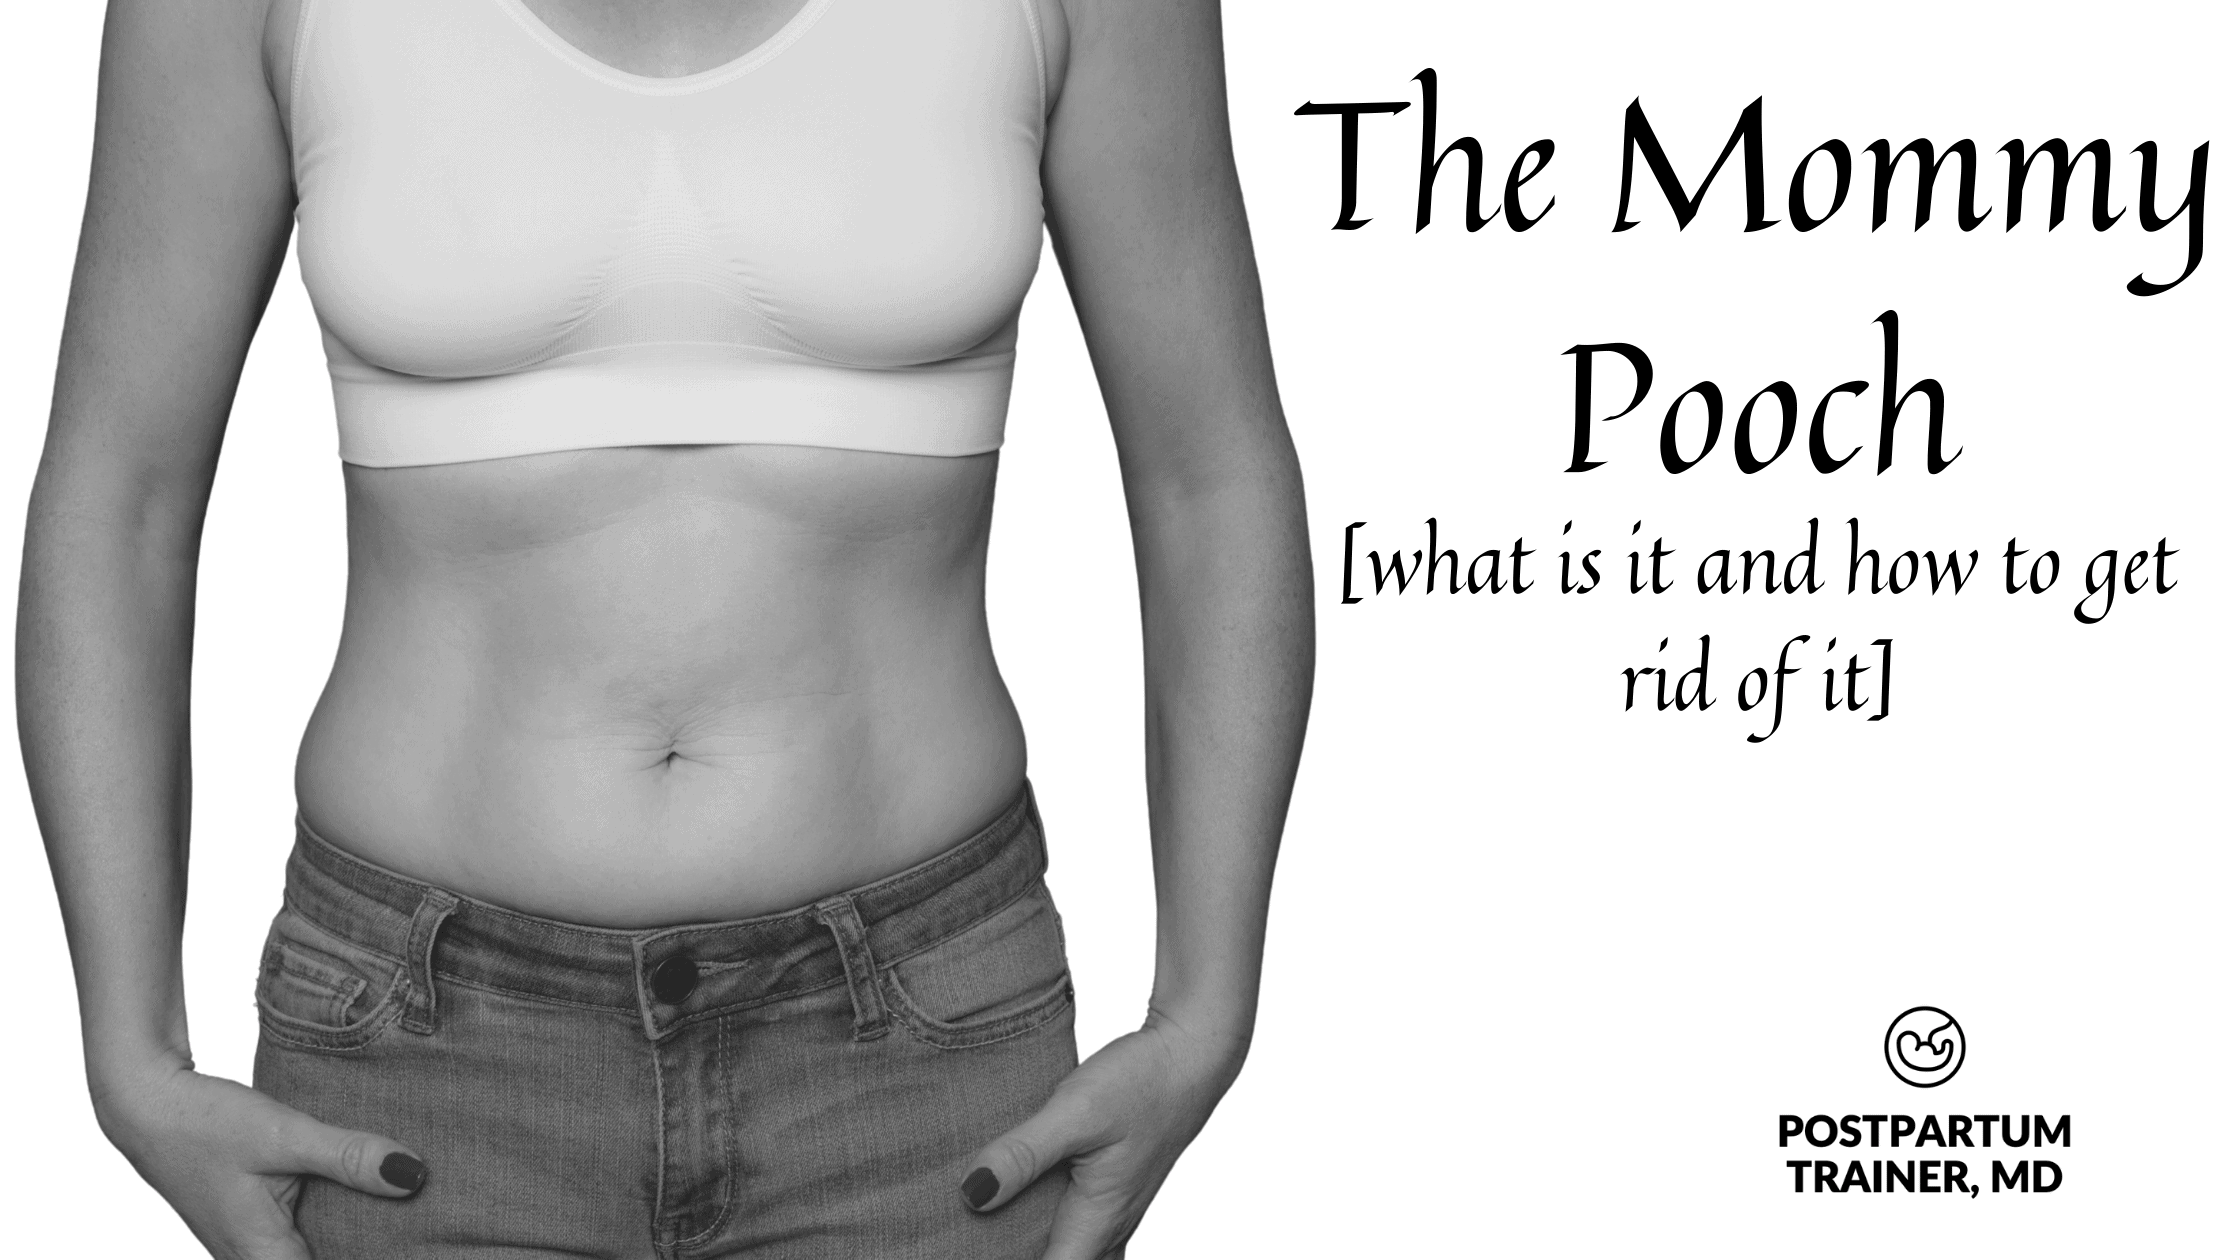 The Mommy Pooch: What Is It & How To Get Rid Of It - Postpartum